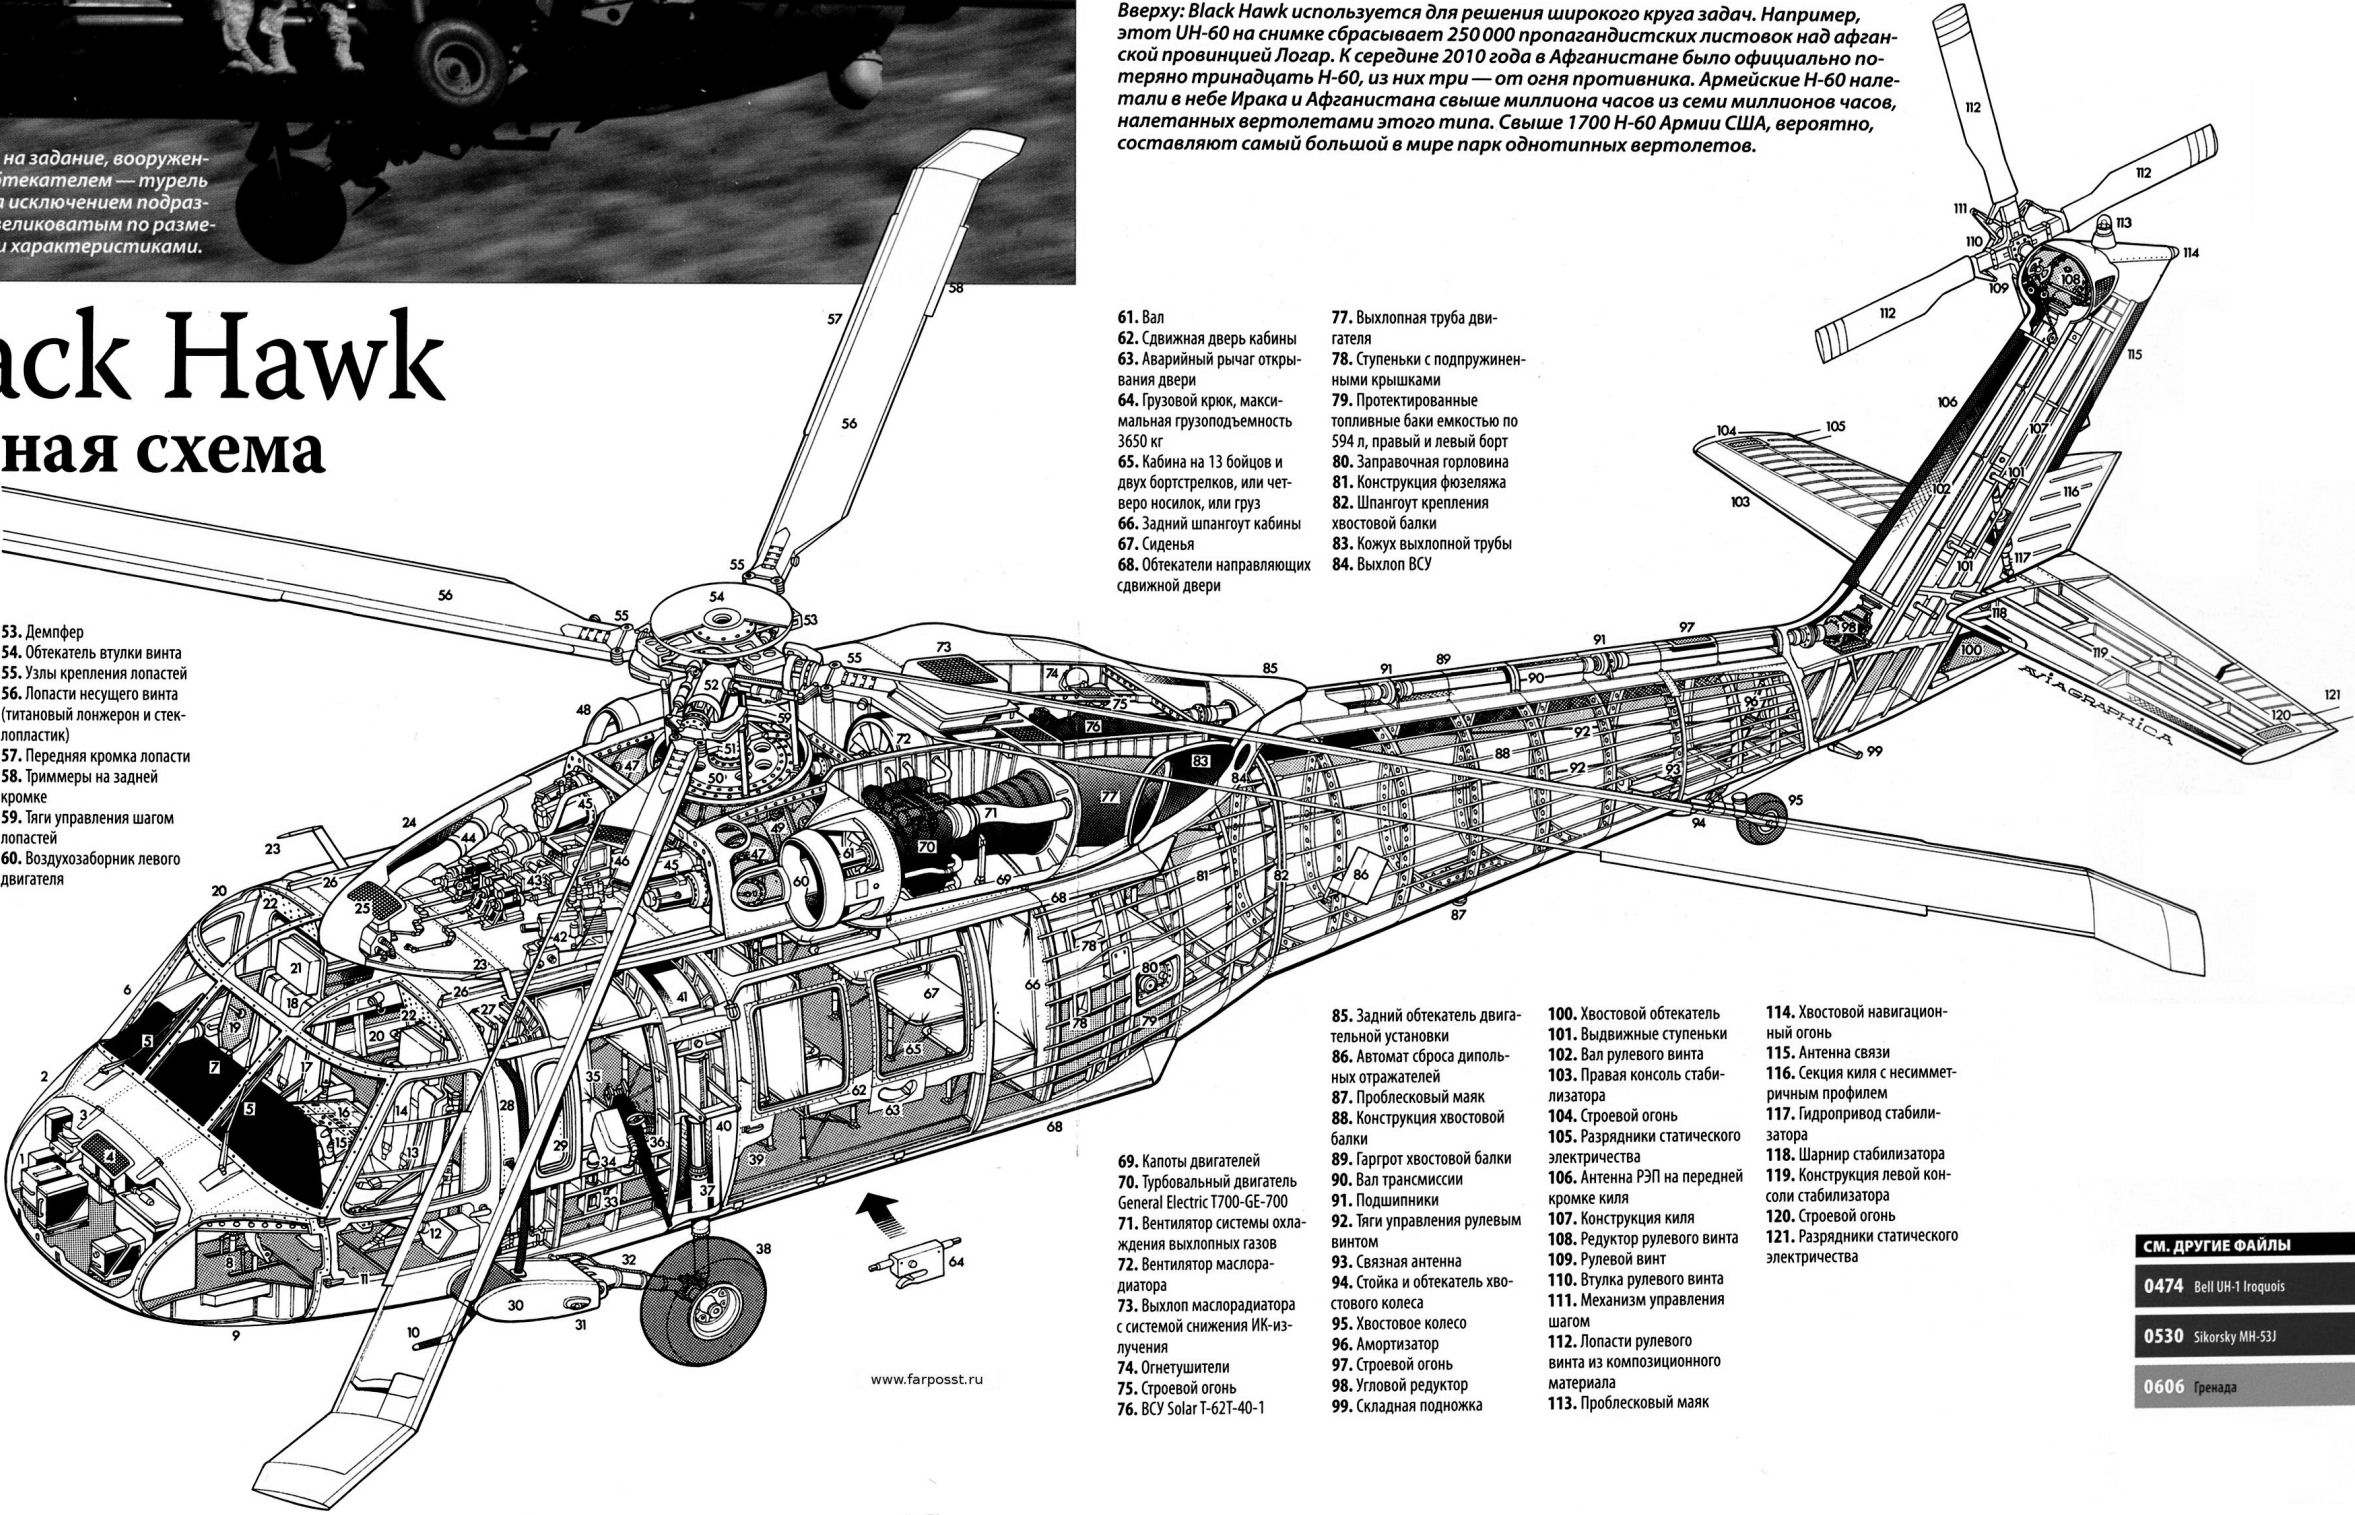 black hawk helicopter diagram